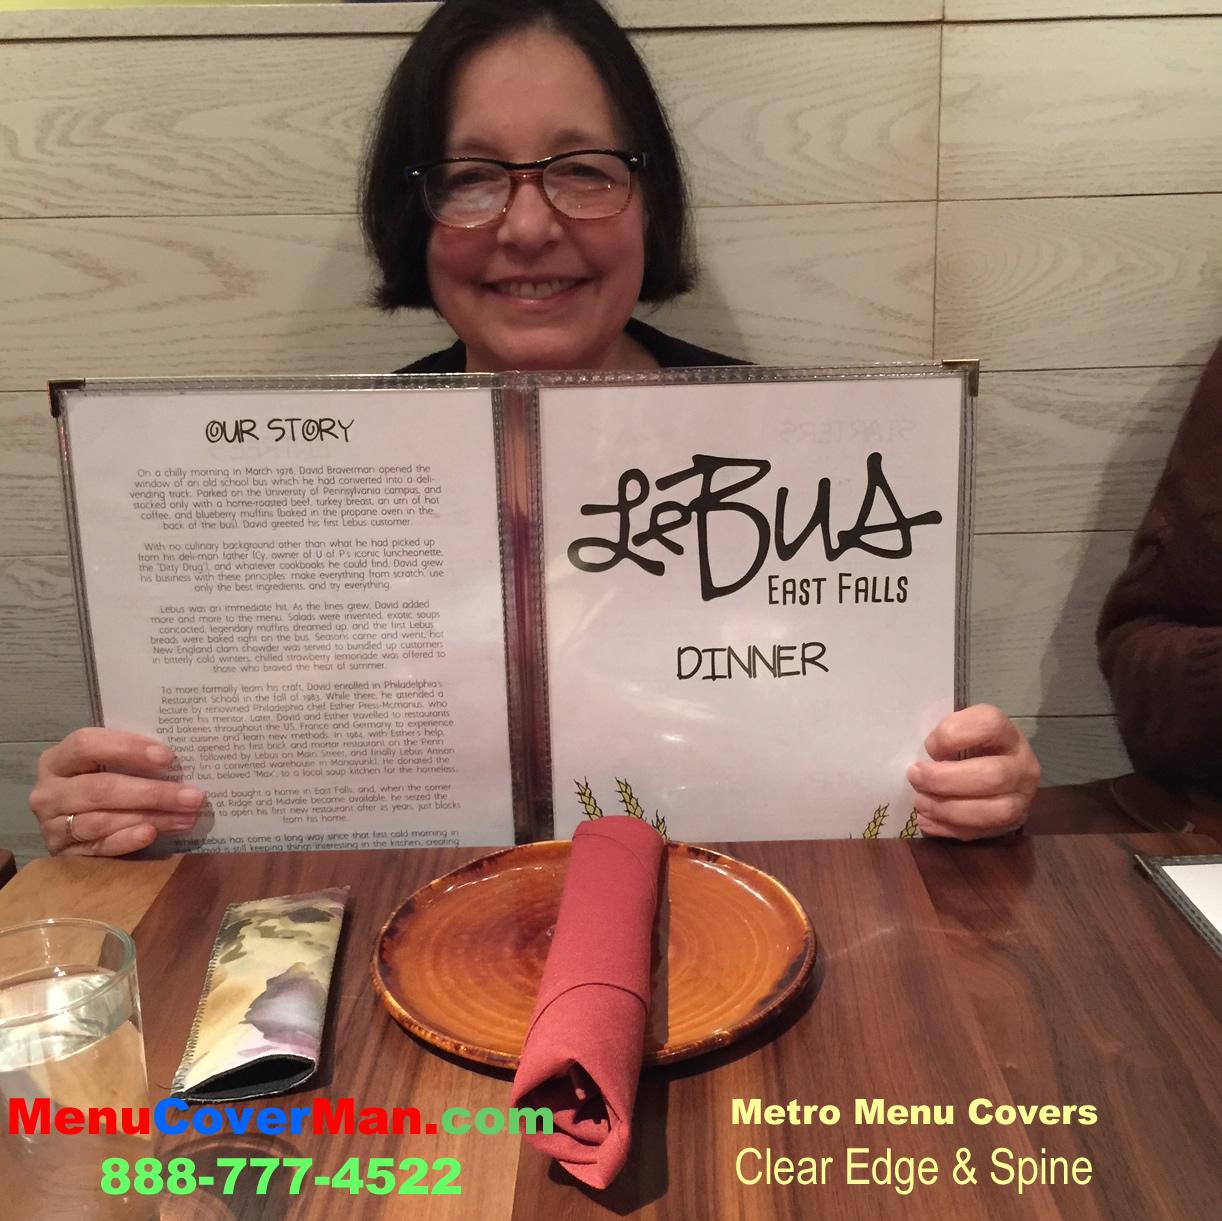 Metro menu covers in use at Le Bus Restaurant East Falls Philadelphia.